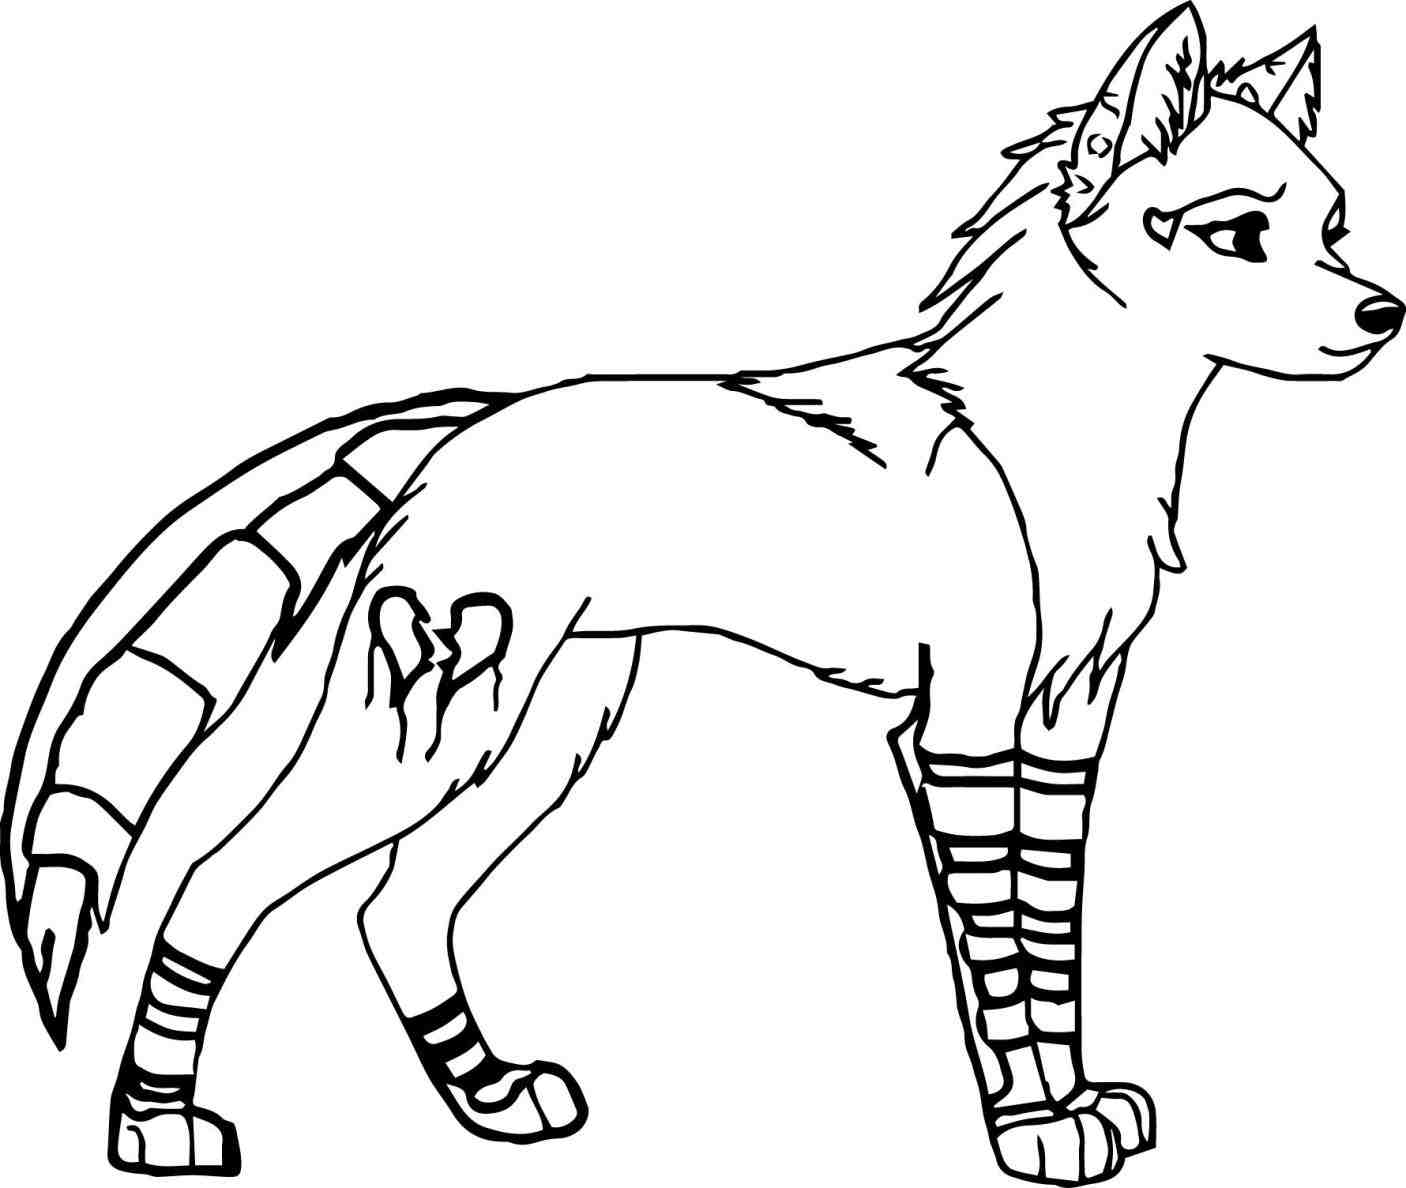 1406x1188 Easy Drawings Of Anime Wolves